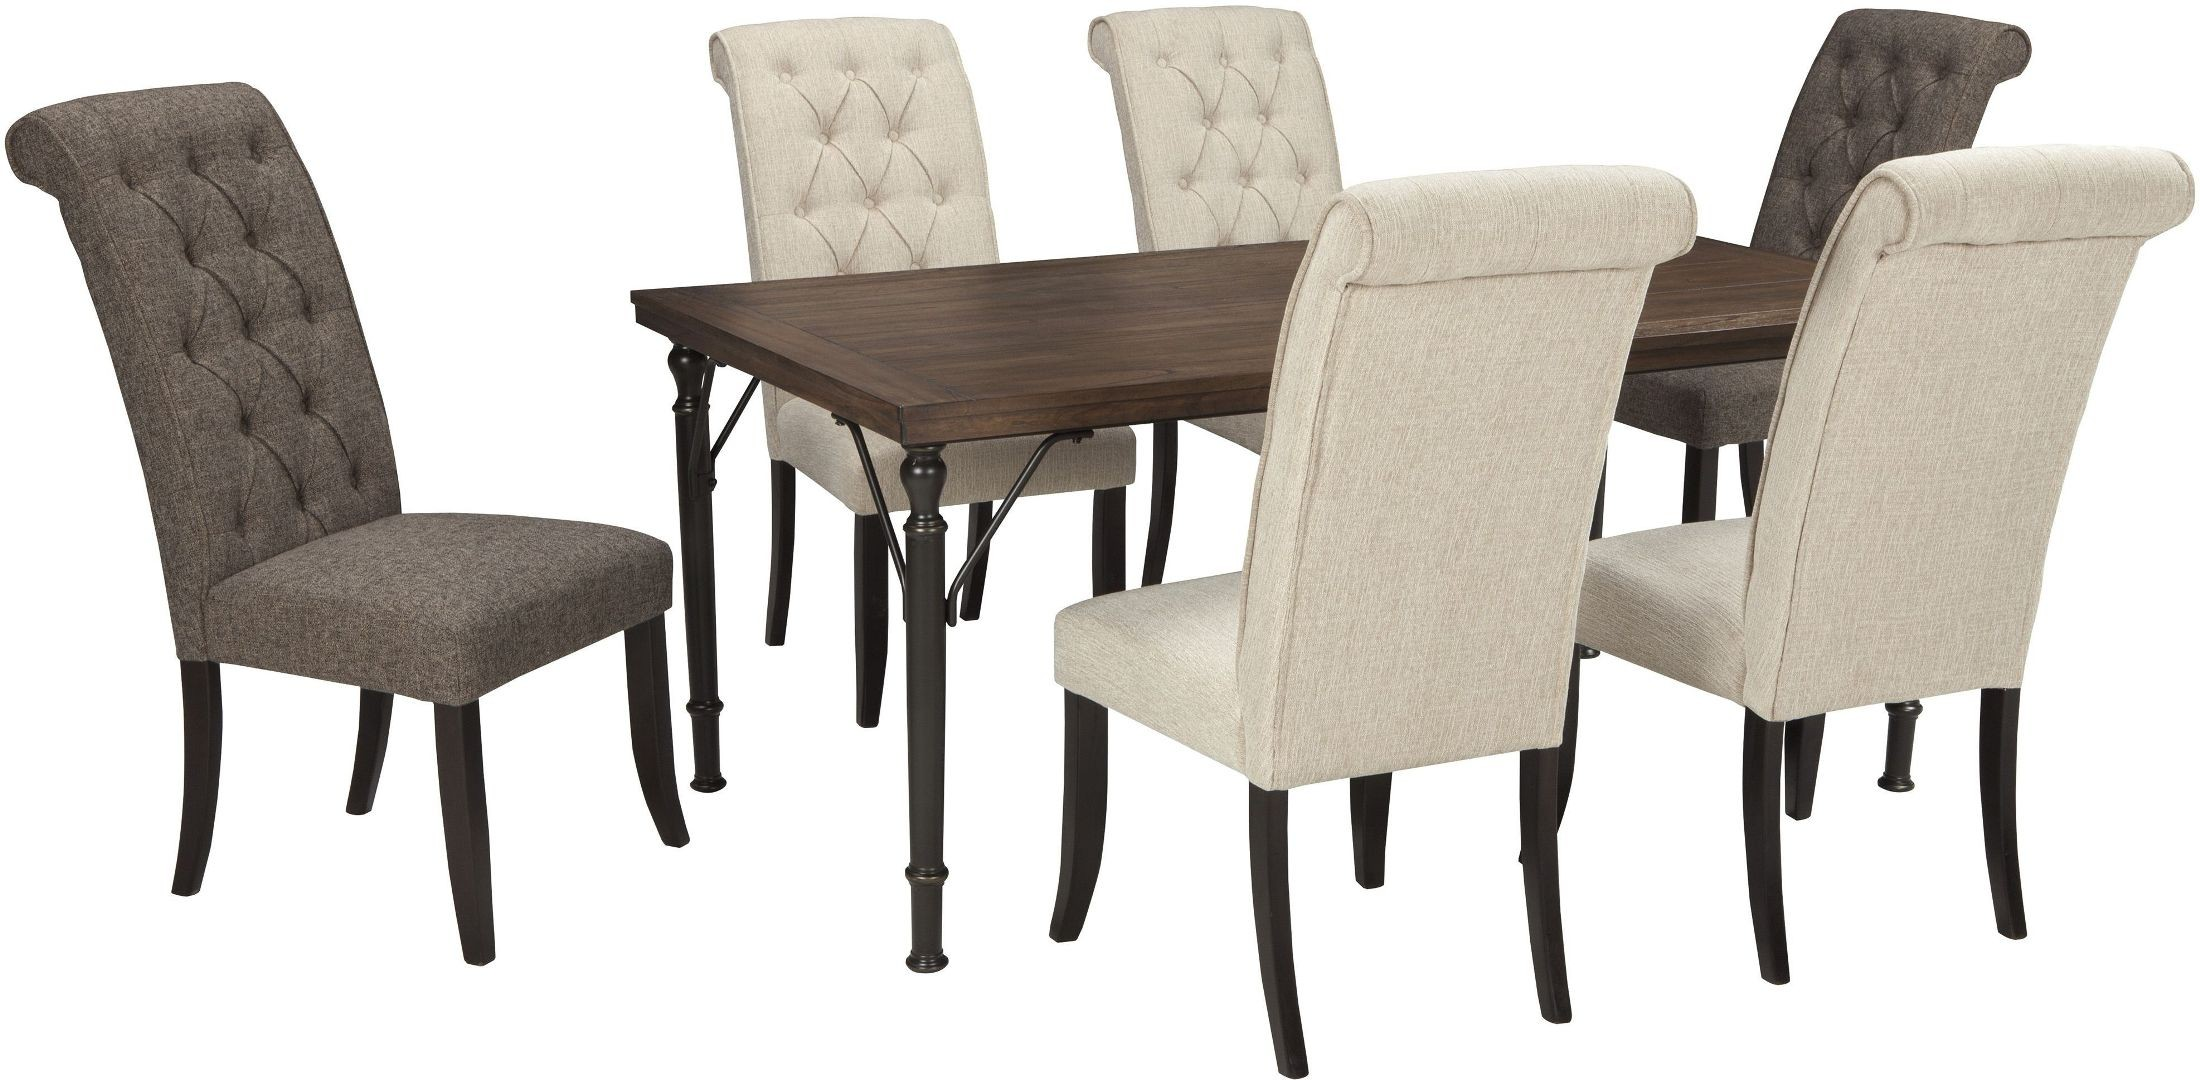 tripton dining uph side chair set of 2 d530 01 tripton dining upholstered side chair set of 2 from 362